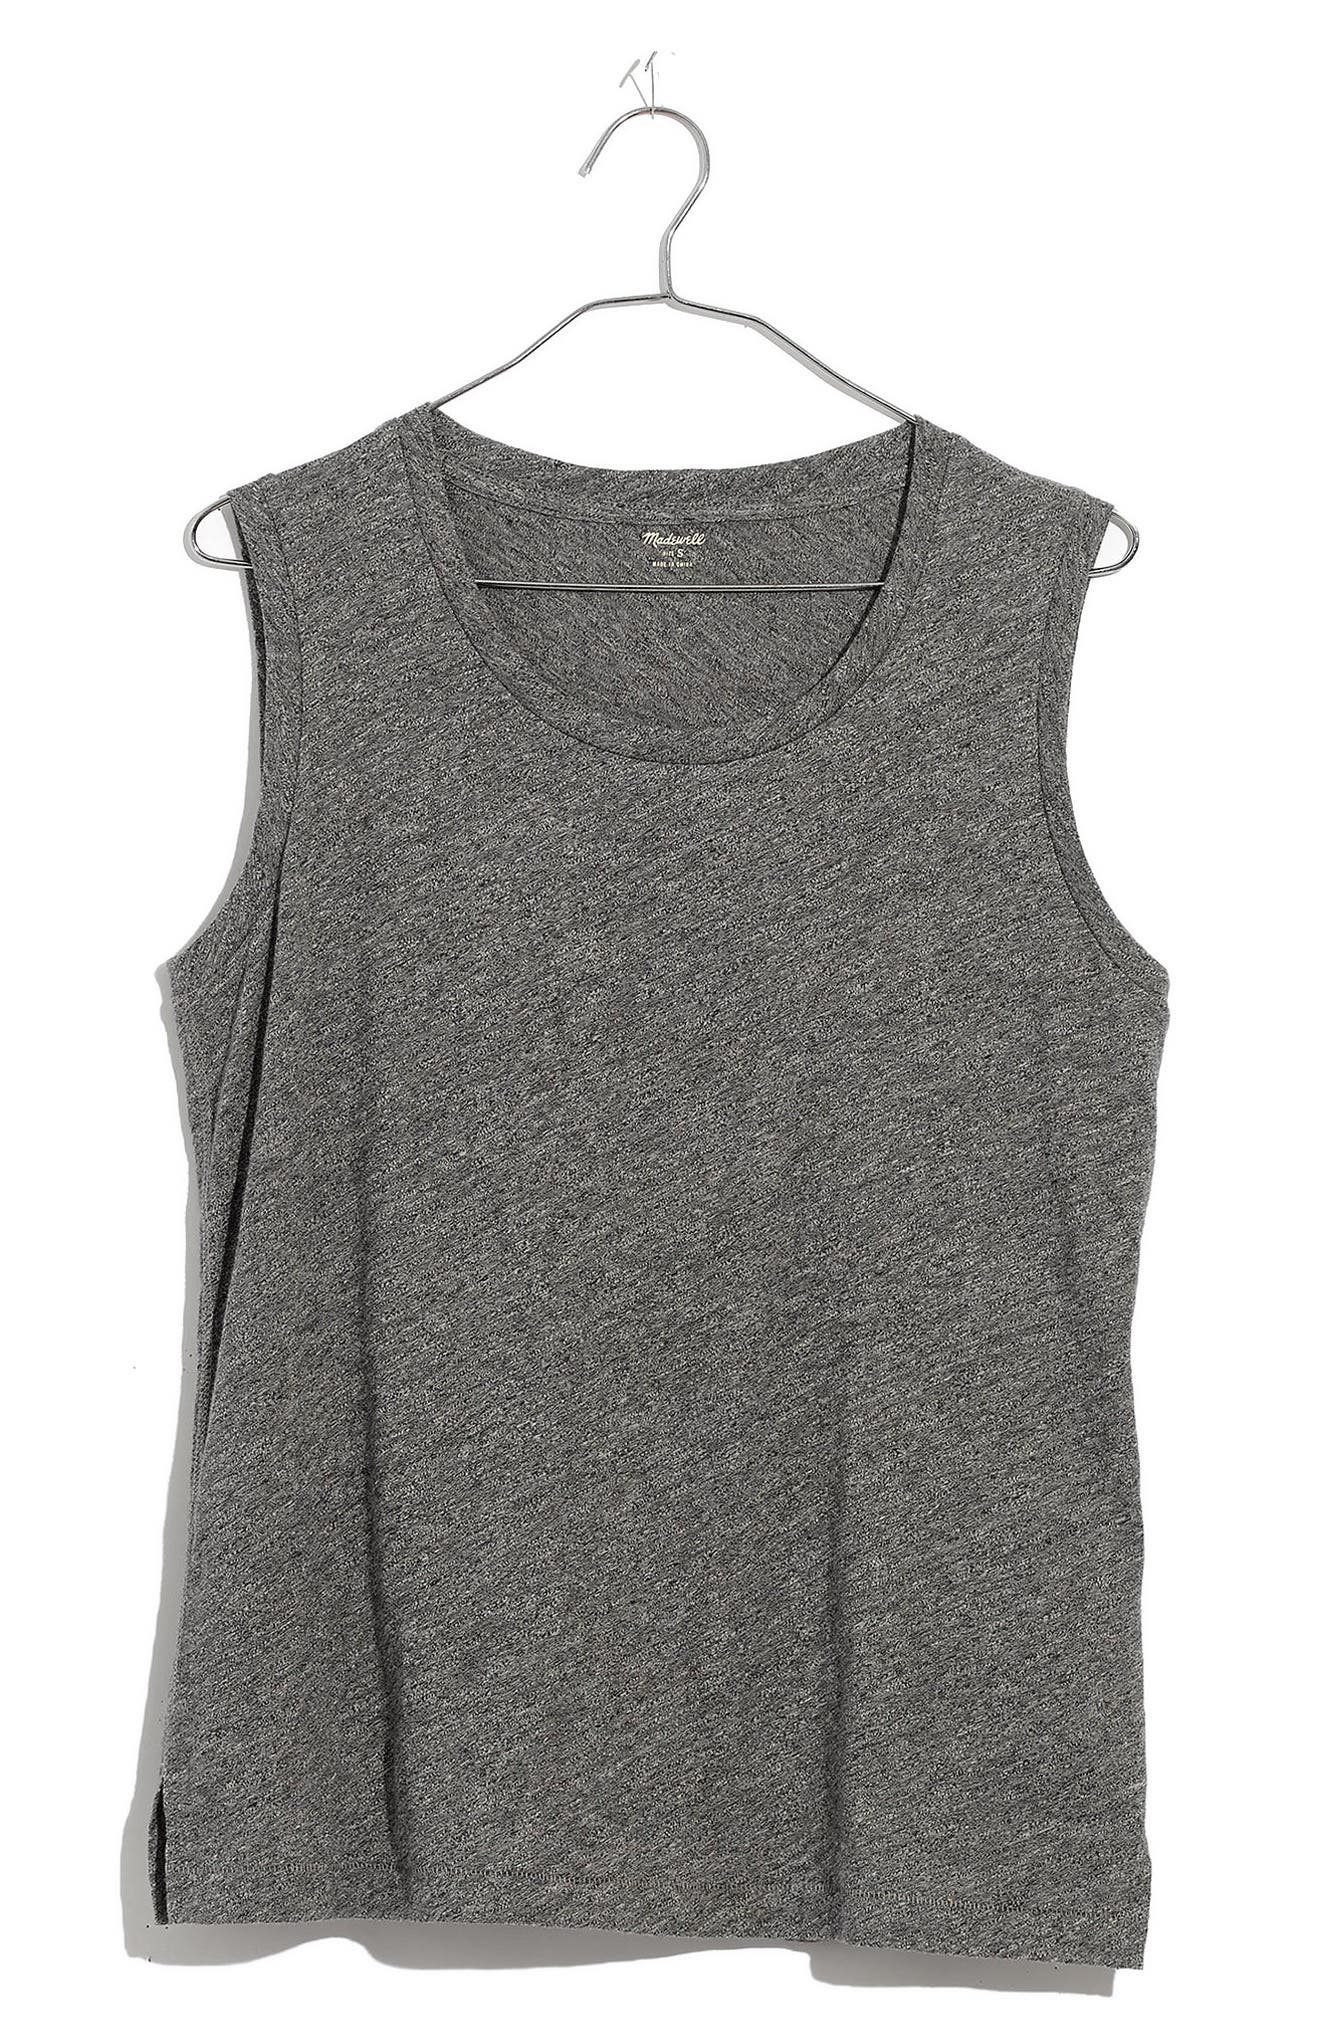 MADEWELL,                             Whisper Cotton Crewneck Muscle Tank,                             Main thumbnail 1, color,                             HEATHER MERCURY